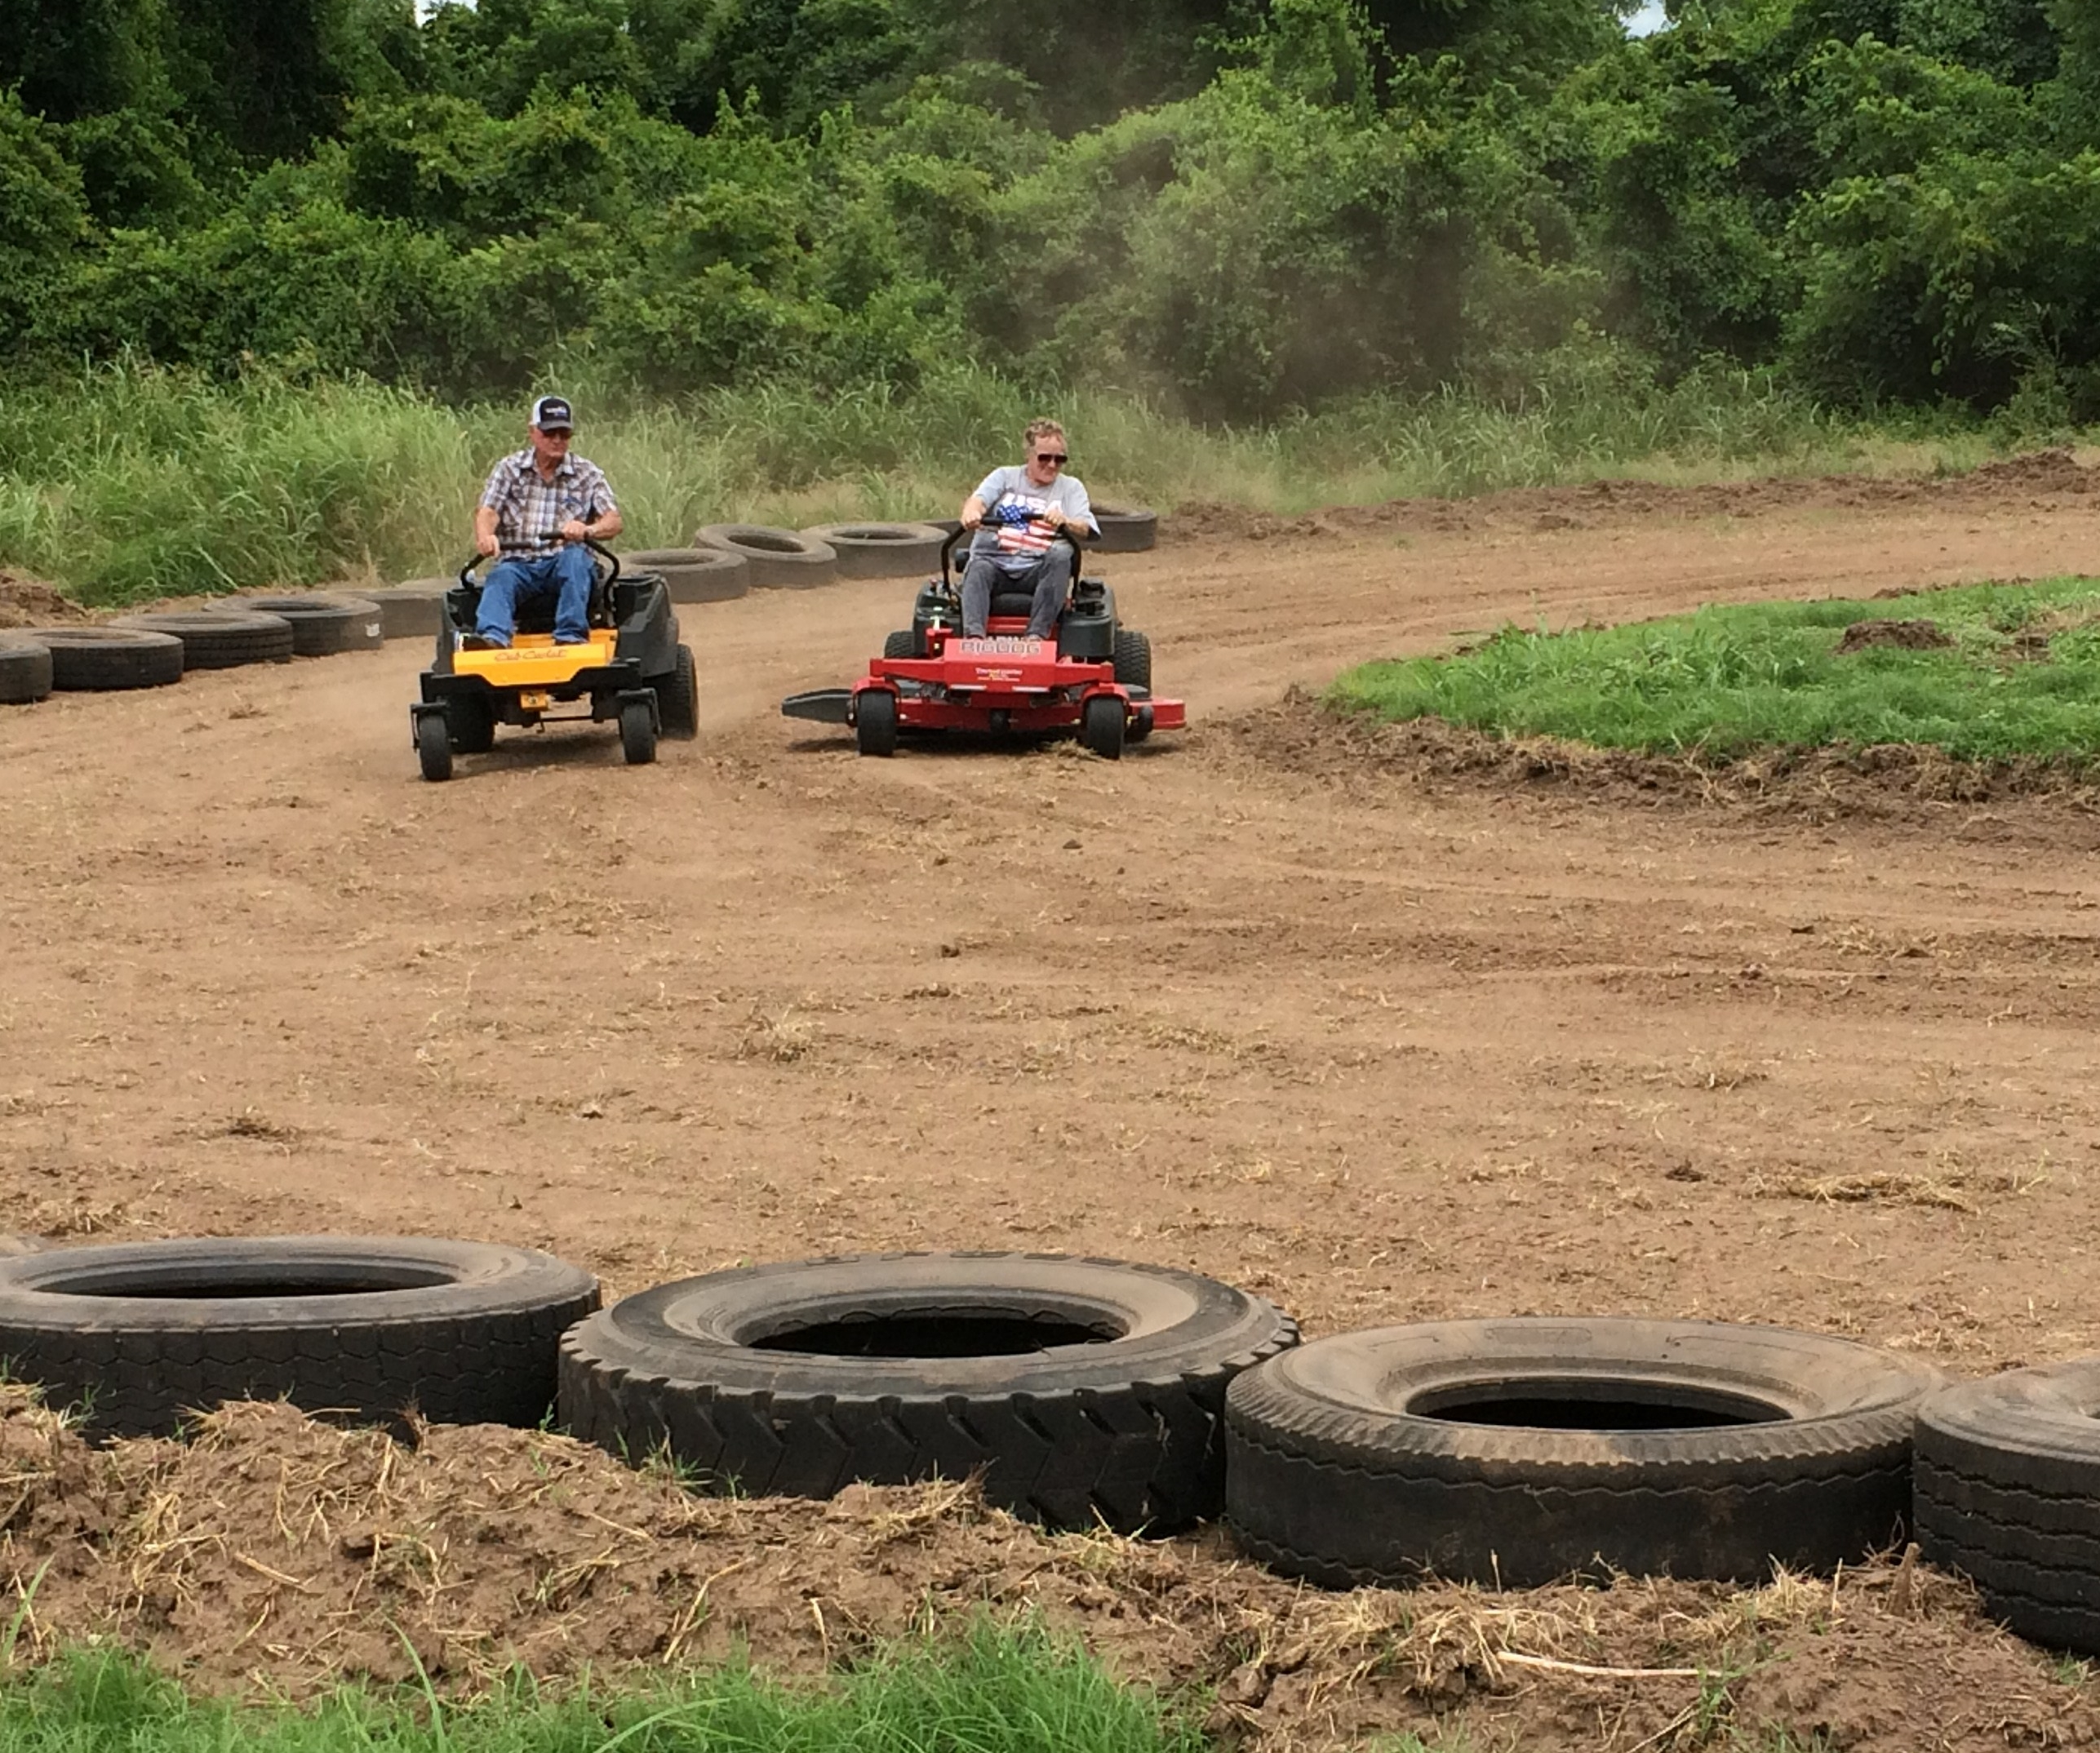 lawnmower race-coming around the corner